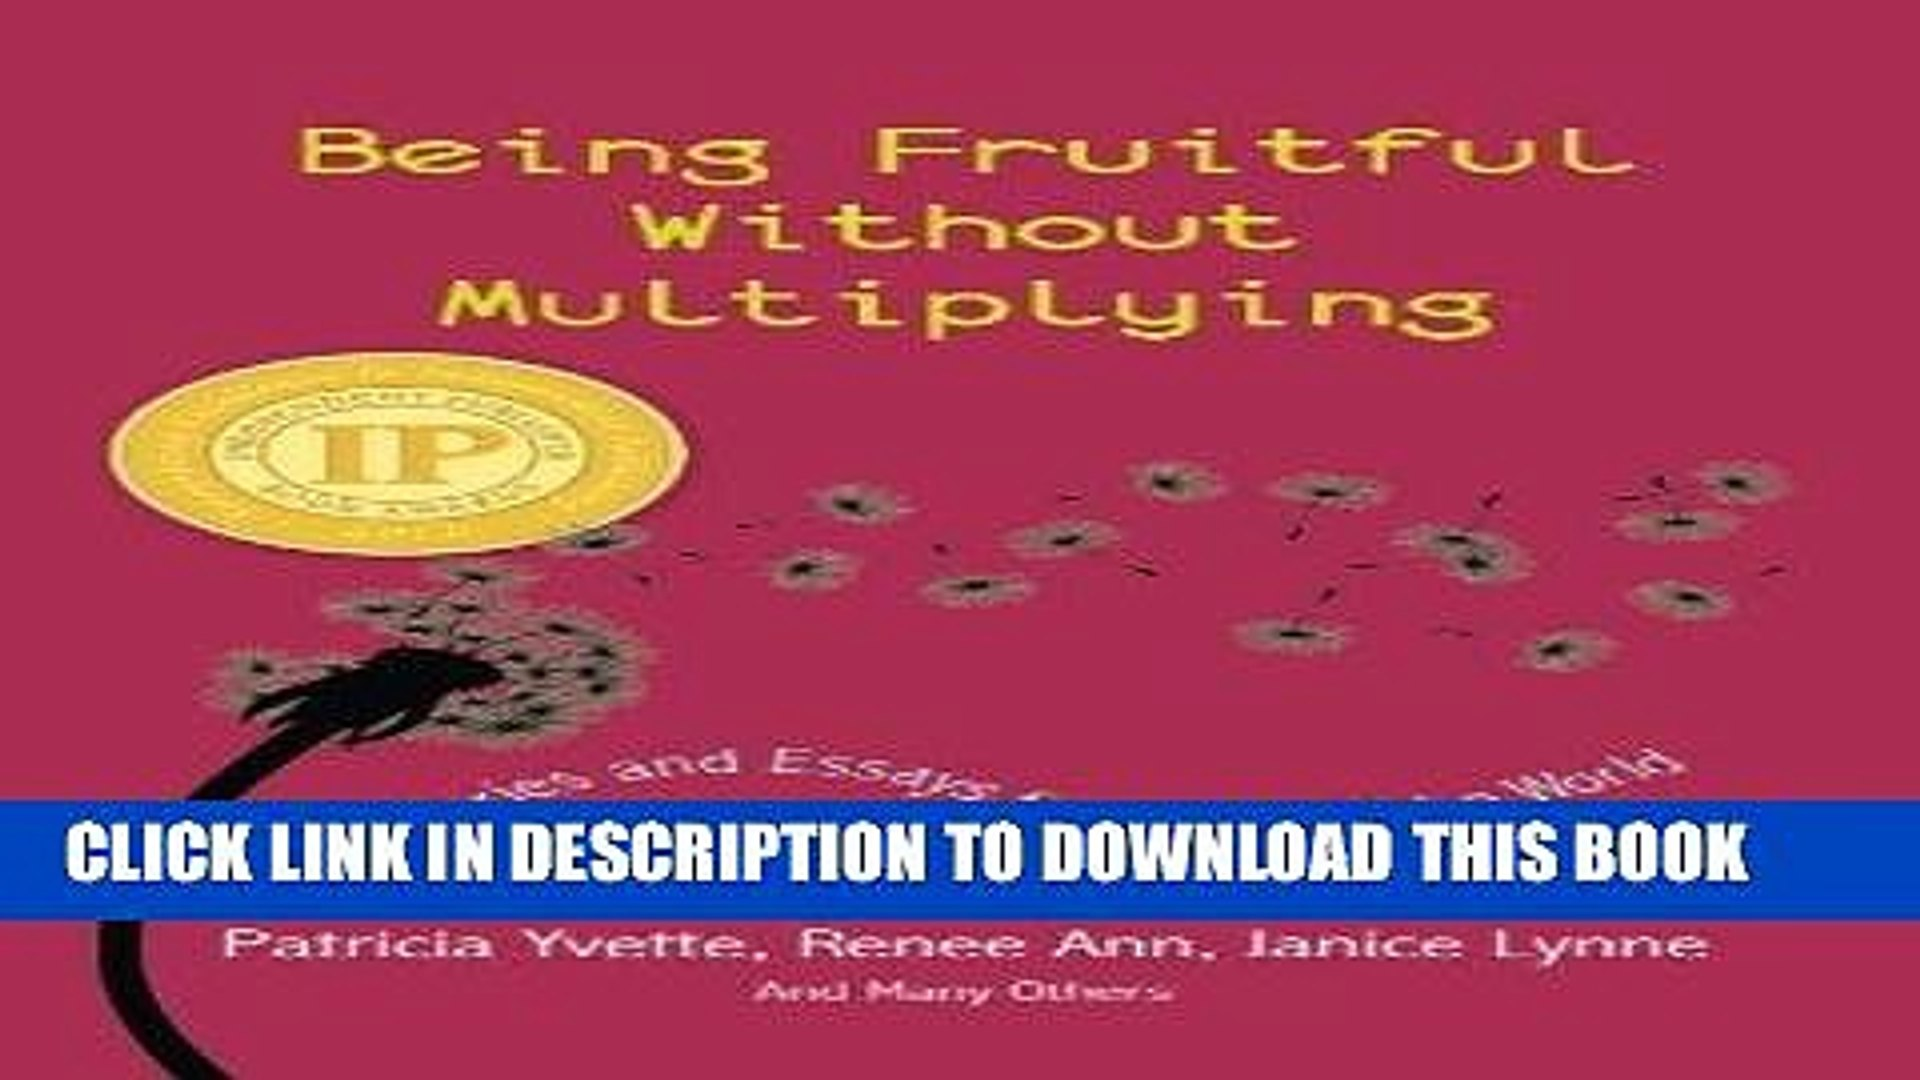 [PDF] Being Fruitful Without Multiplying: Stories and Essays from around the World Popular Online